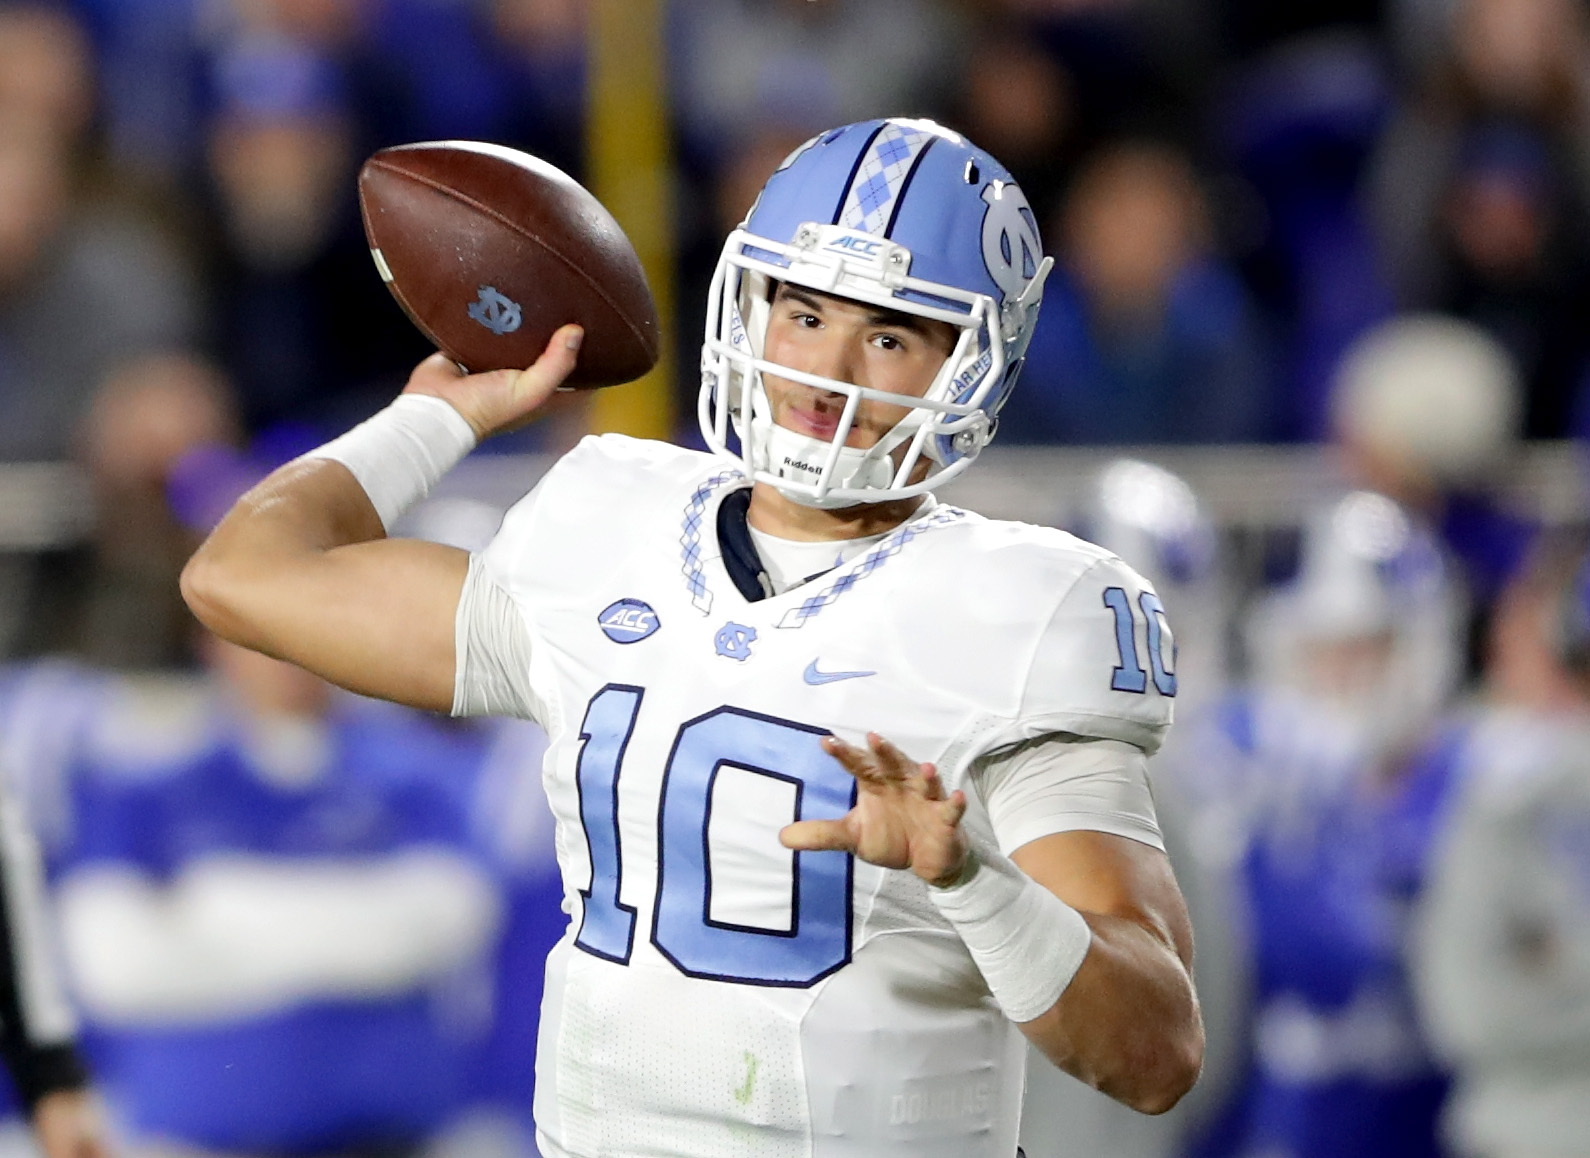 The Bills took a closer look at North Carolina quarterback Mitchell Trubisky during a private workout.  (Photo by Streeter Lecka/Getty Images)